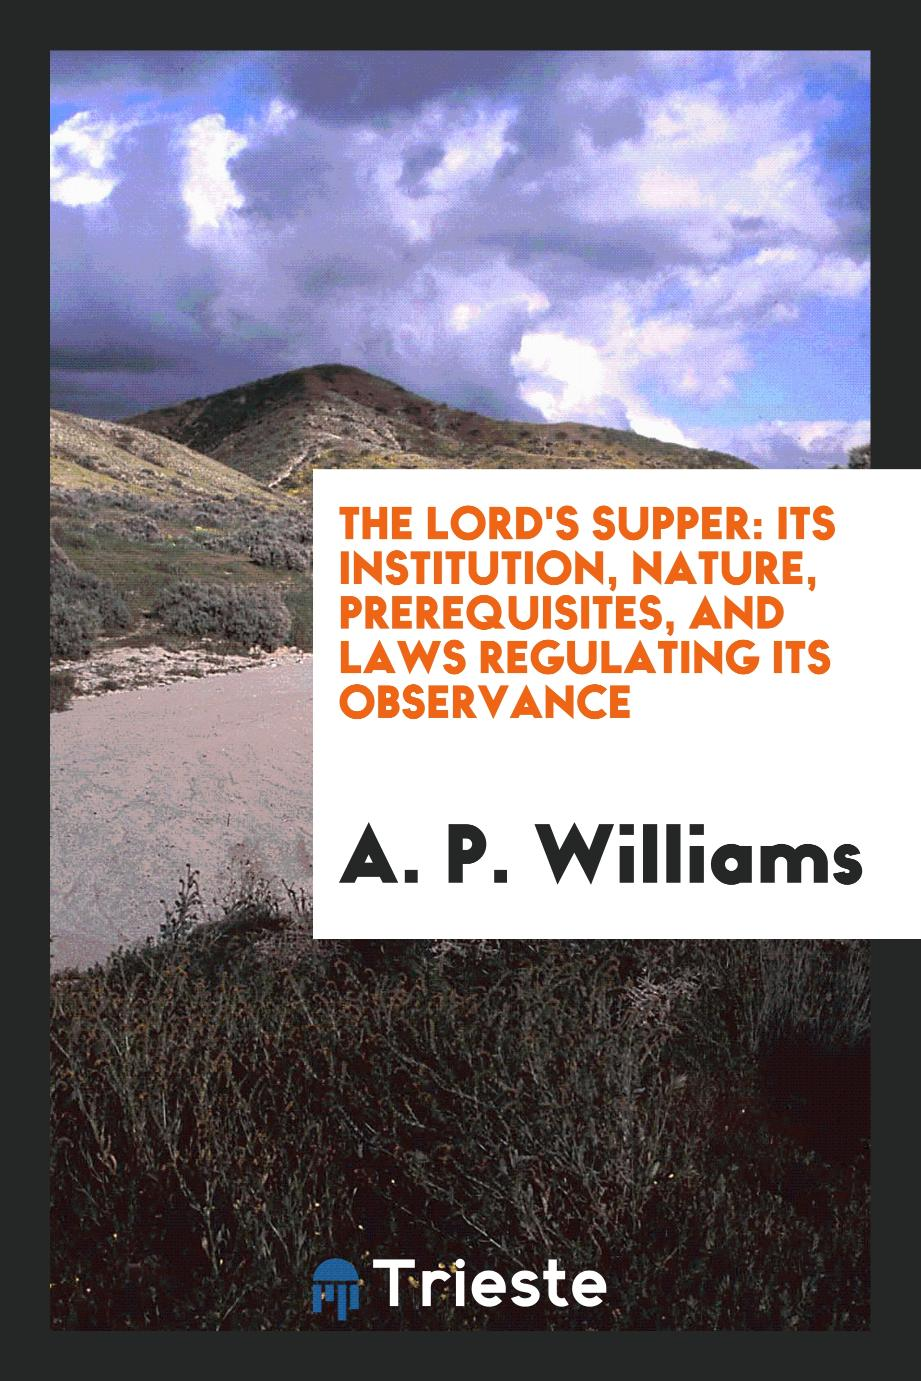 The Lord's Supper: Its Institution, Nature, Prerequisites, and Laws Regulating Its Observance